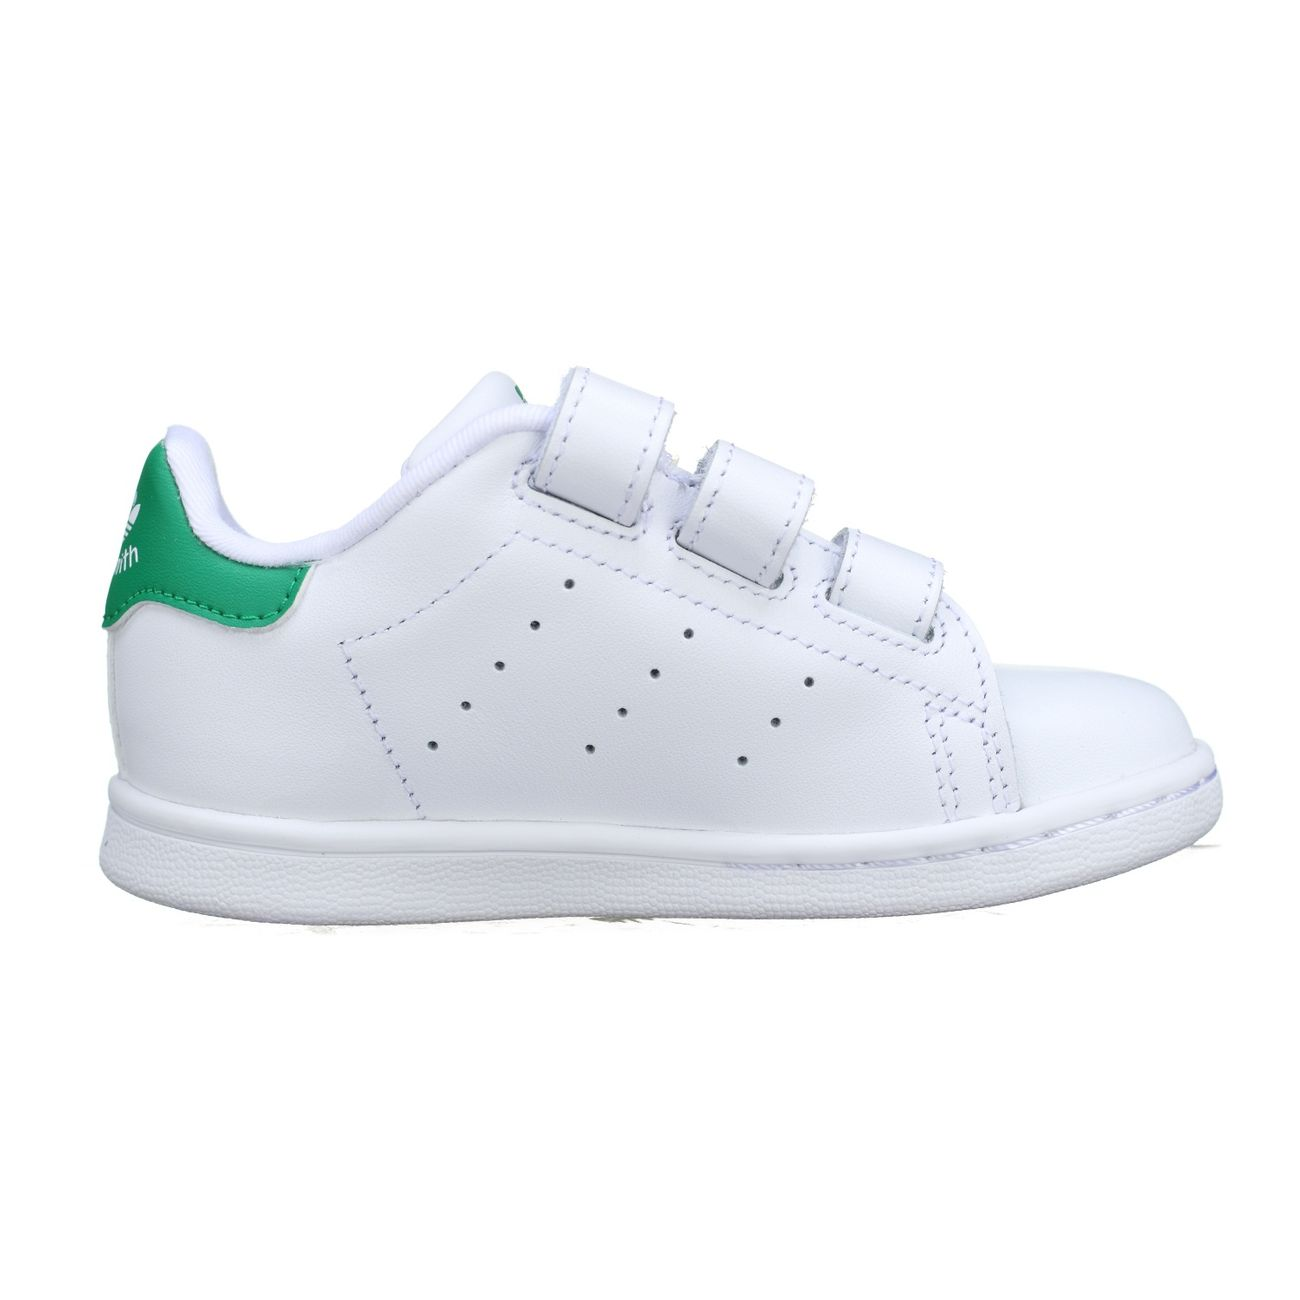 Mode- Lifestyle Bébé ADIDAS ORIGINALS Basket adidas Originals Stan Smith Bébé - BZ0520